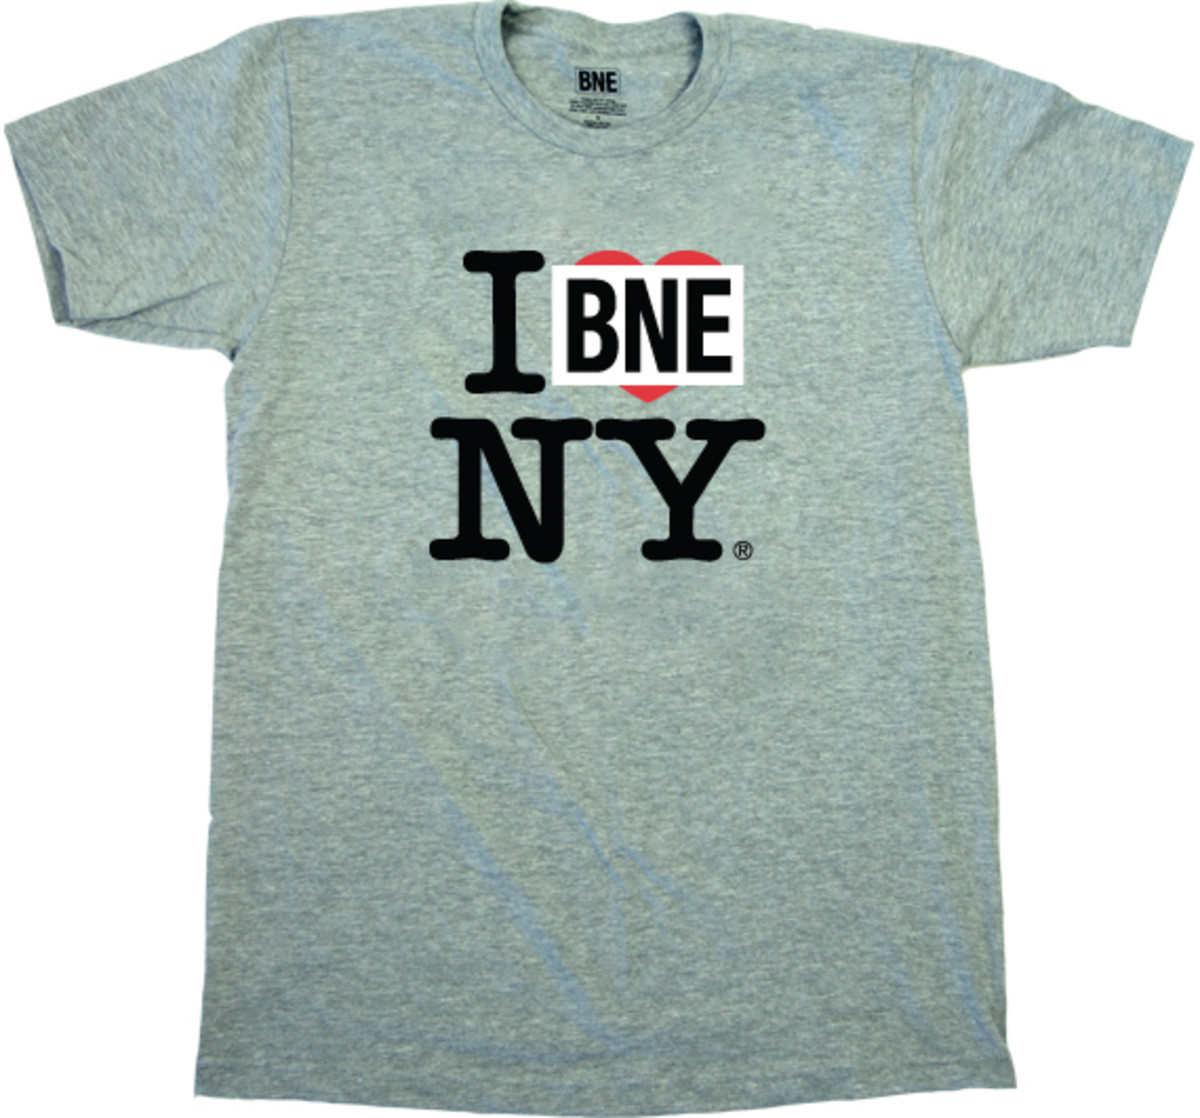 bne-water-foundation-fall-2012-t-shirt-collection-delivery-2-02